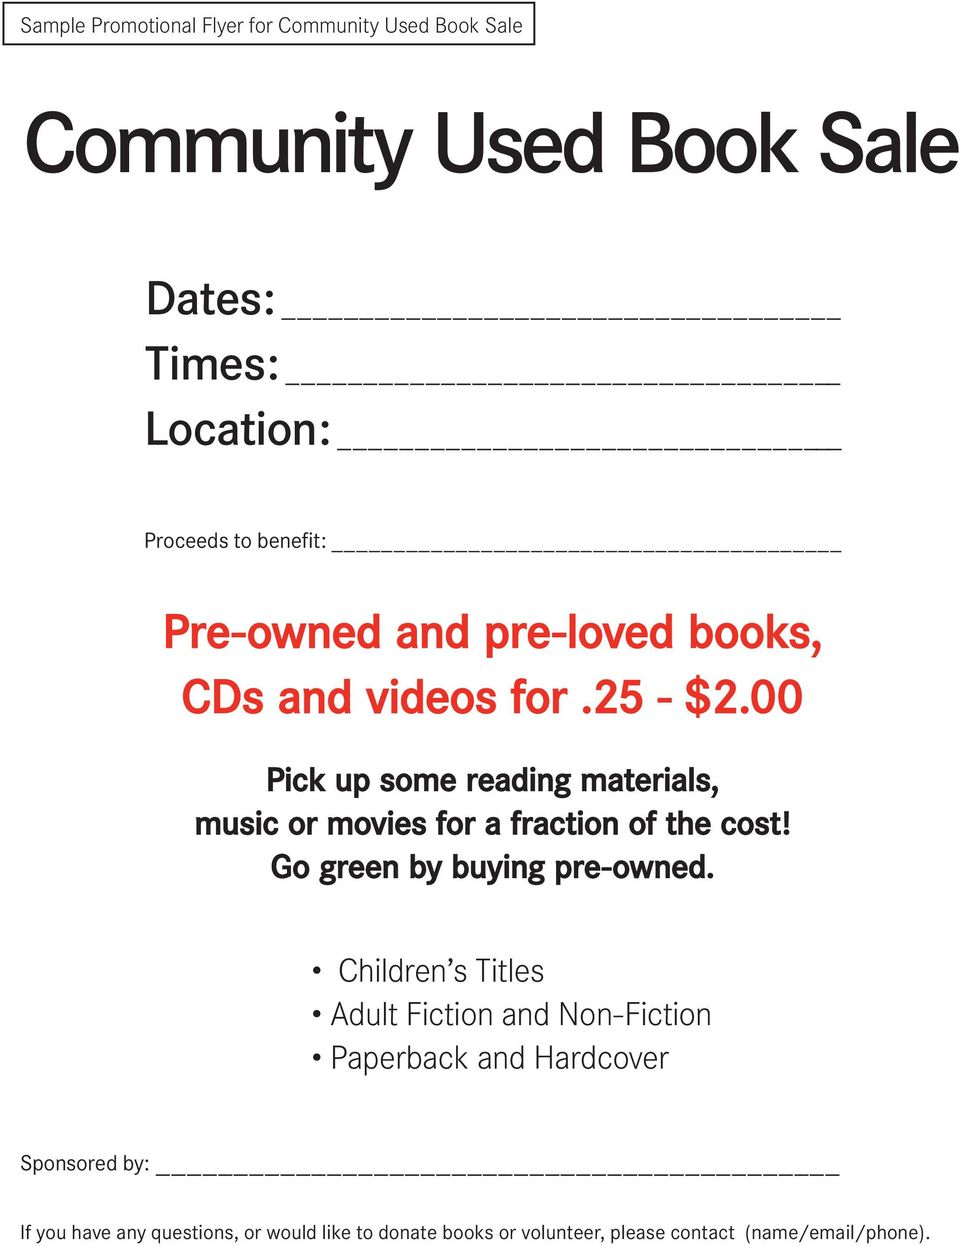 00 Pick up some reading materials, music or movies for a fraction of the cost! Go green by buying pre-owned.